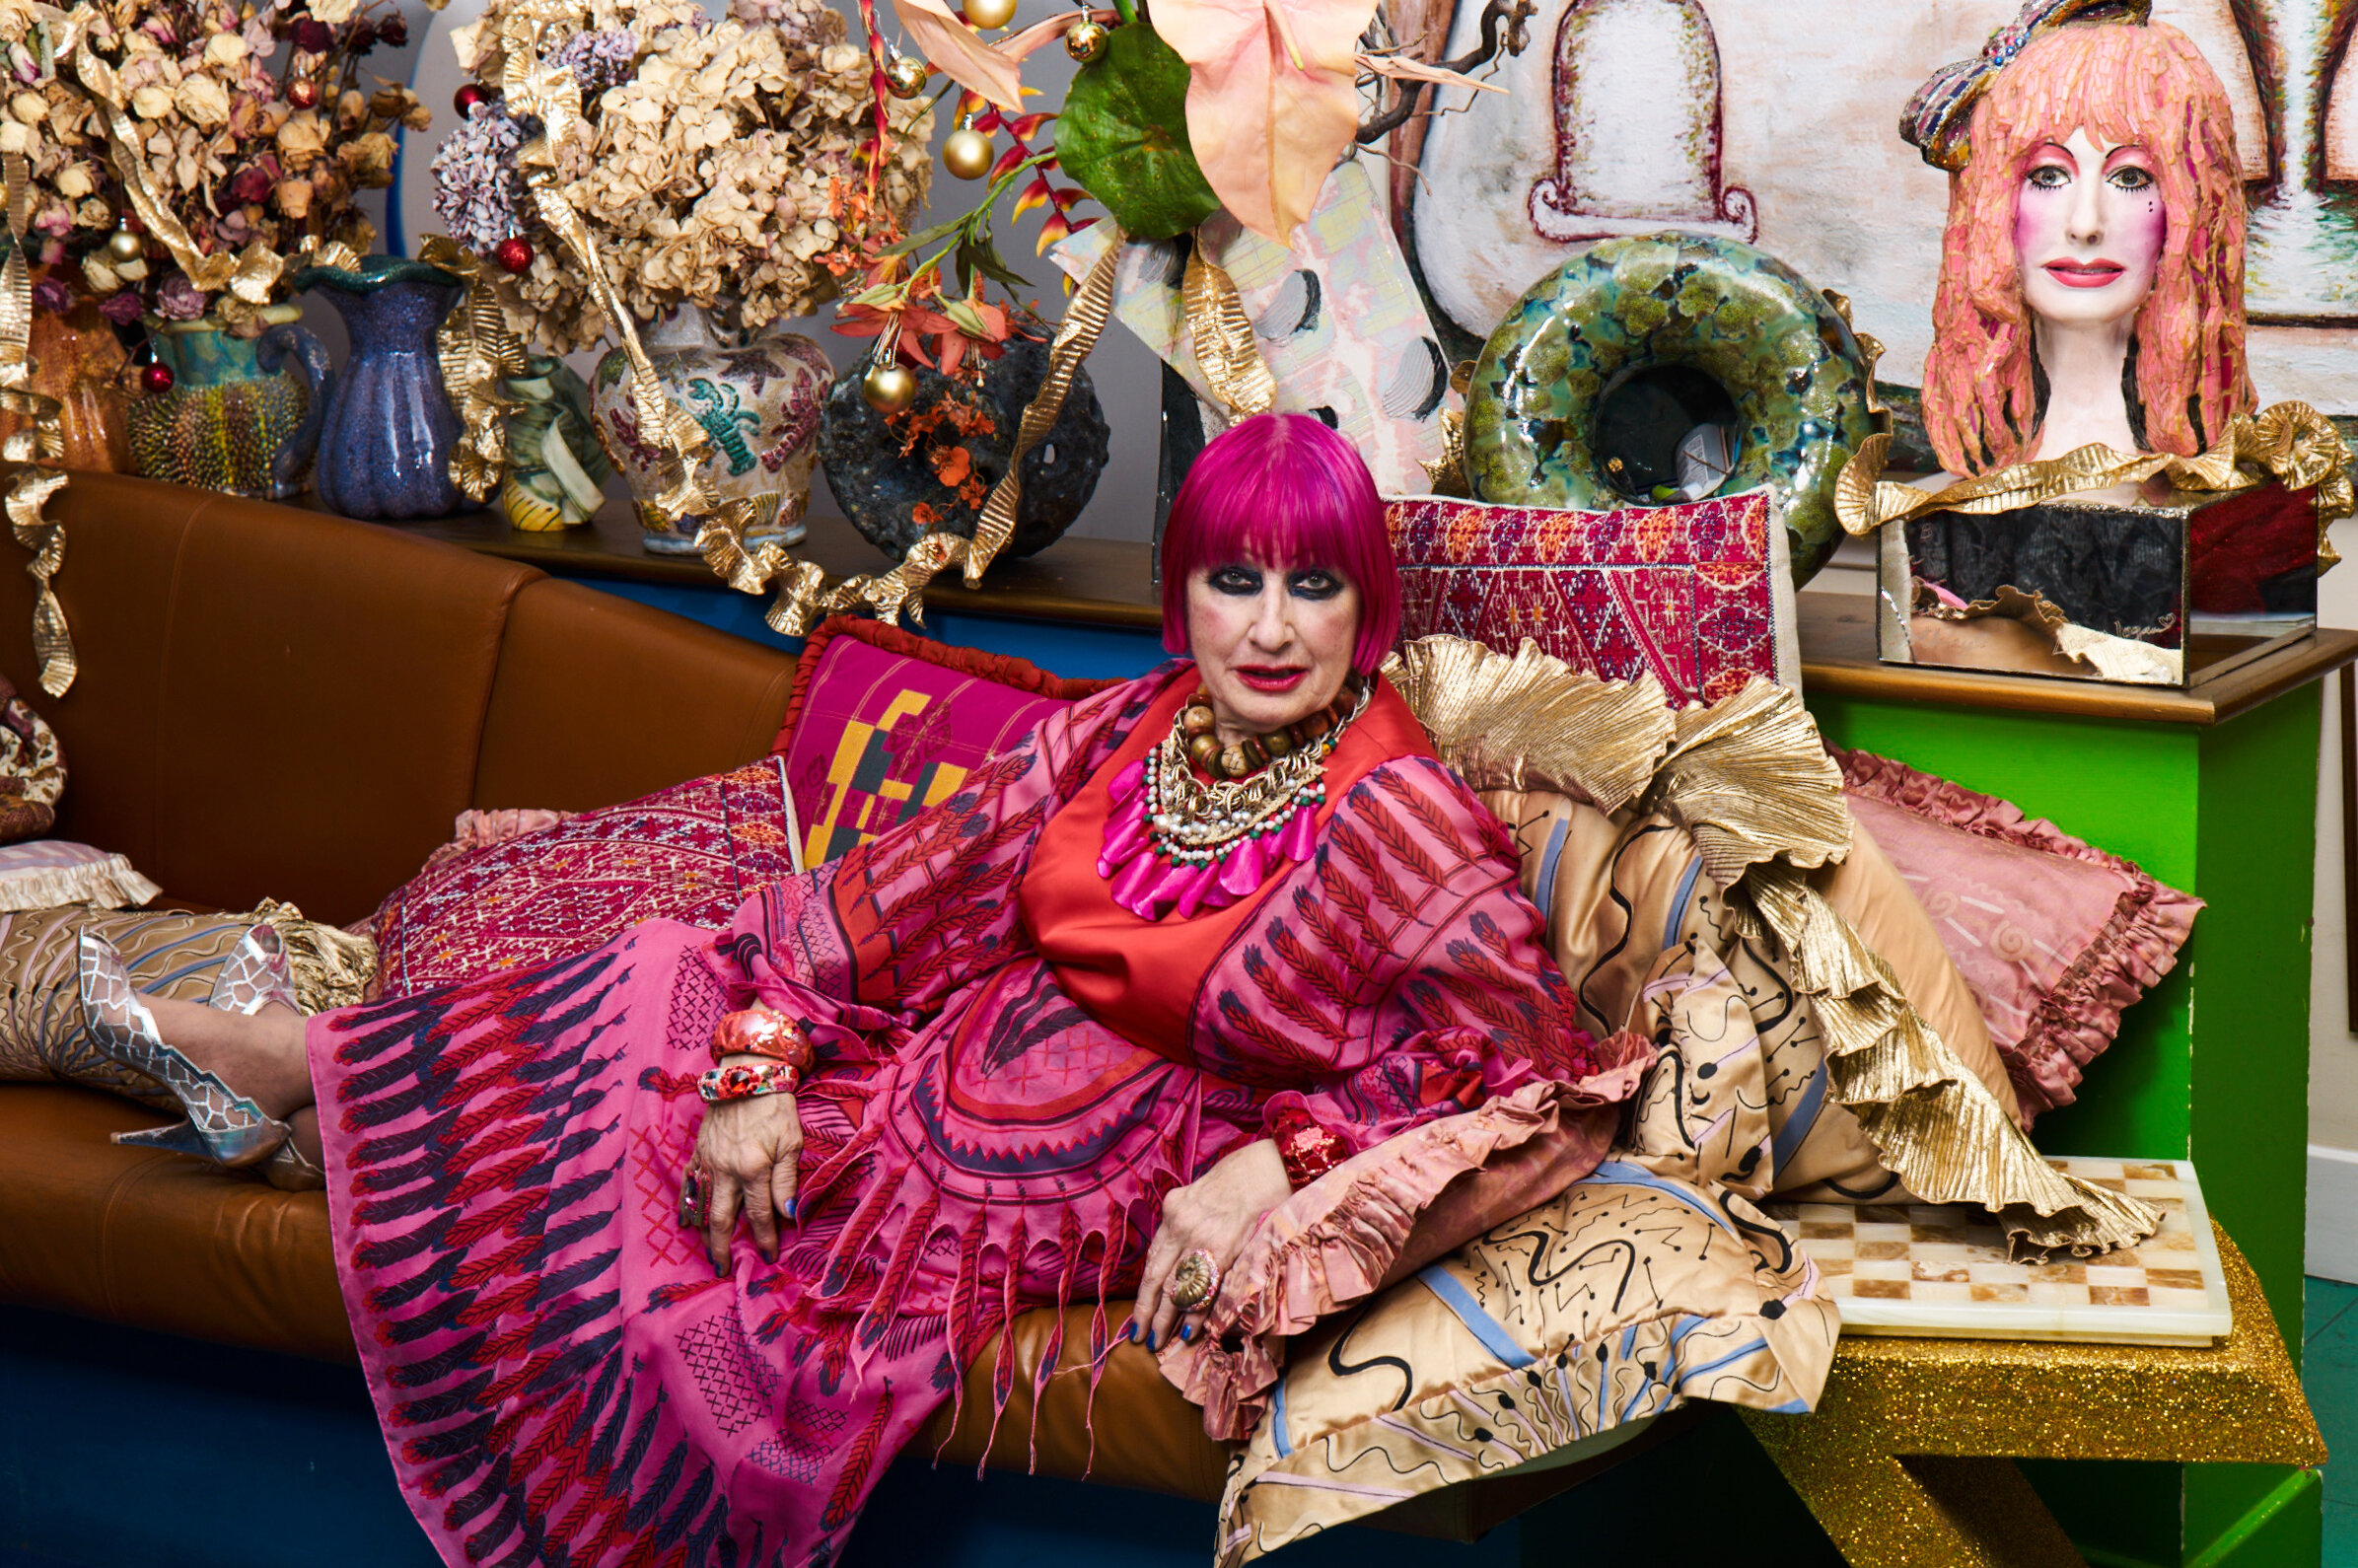 Zandra Rhodes photographed in her home by Ram Shergill